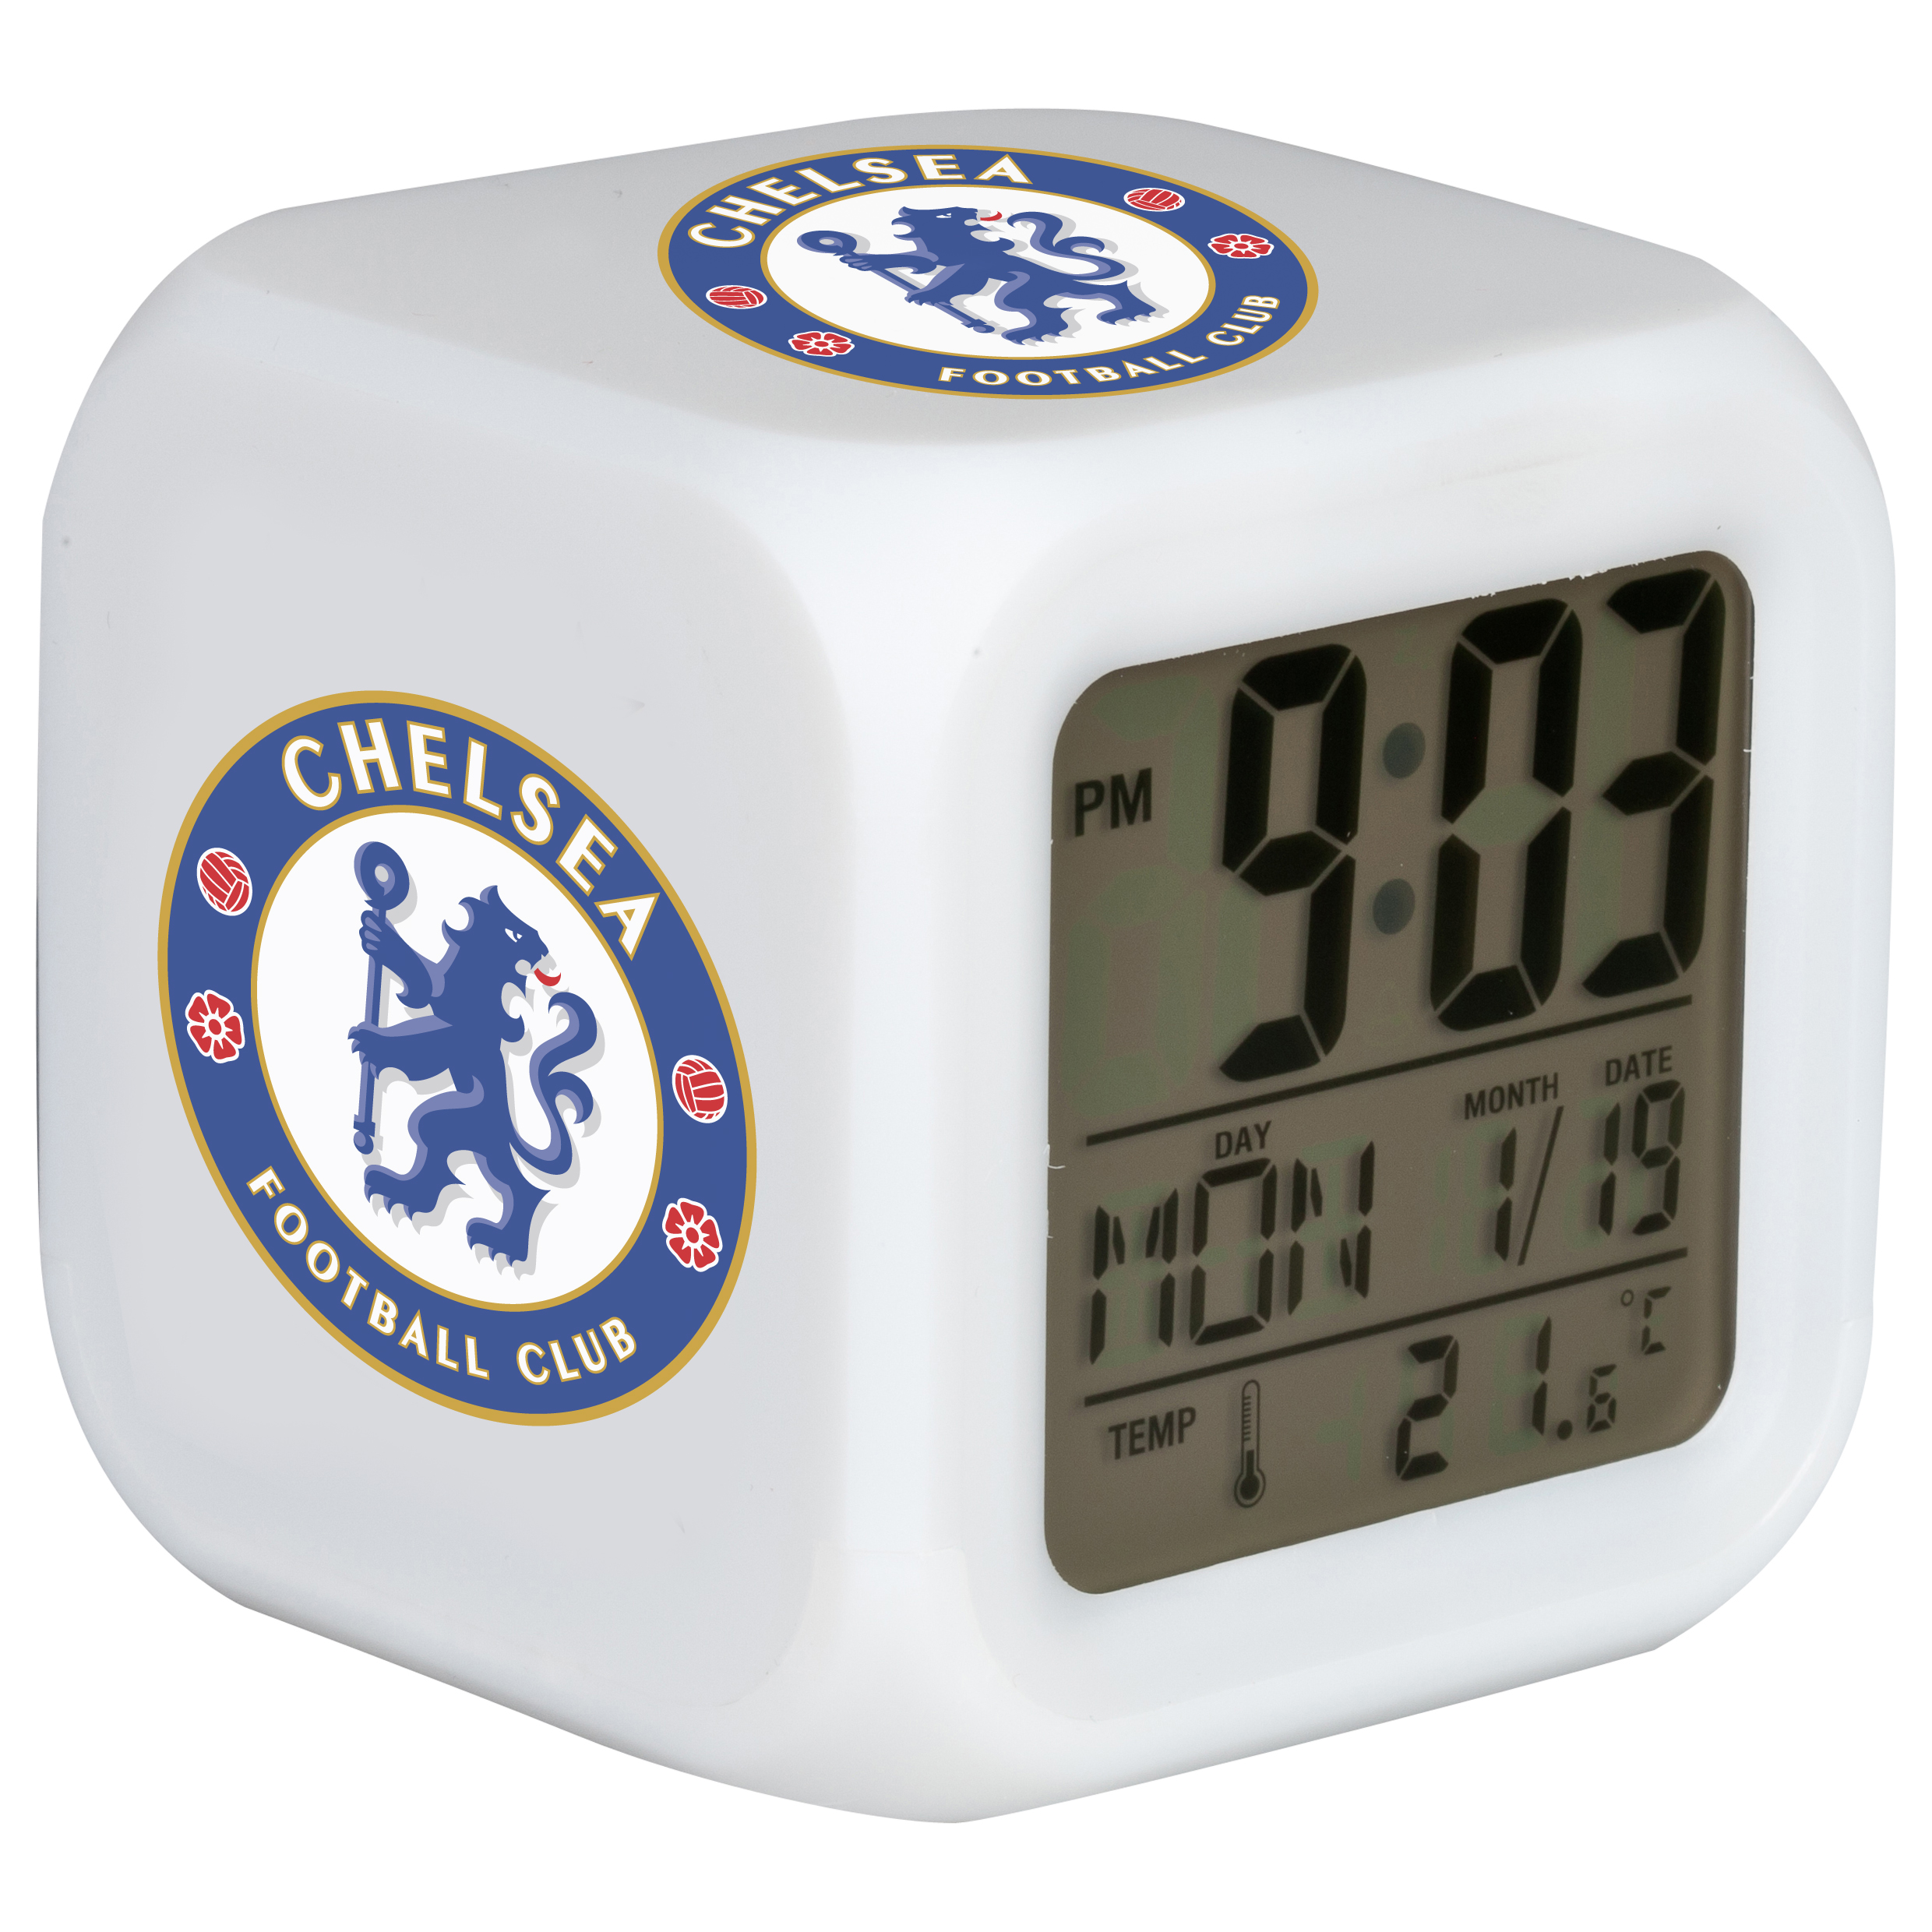 Chelsea Digital Cube Clock